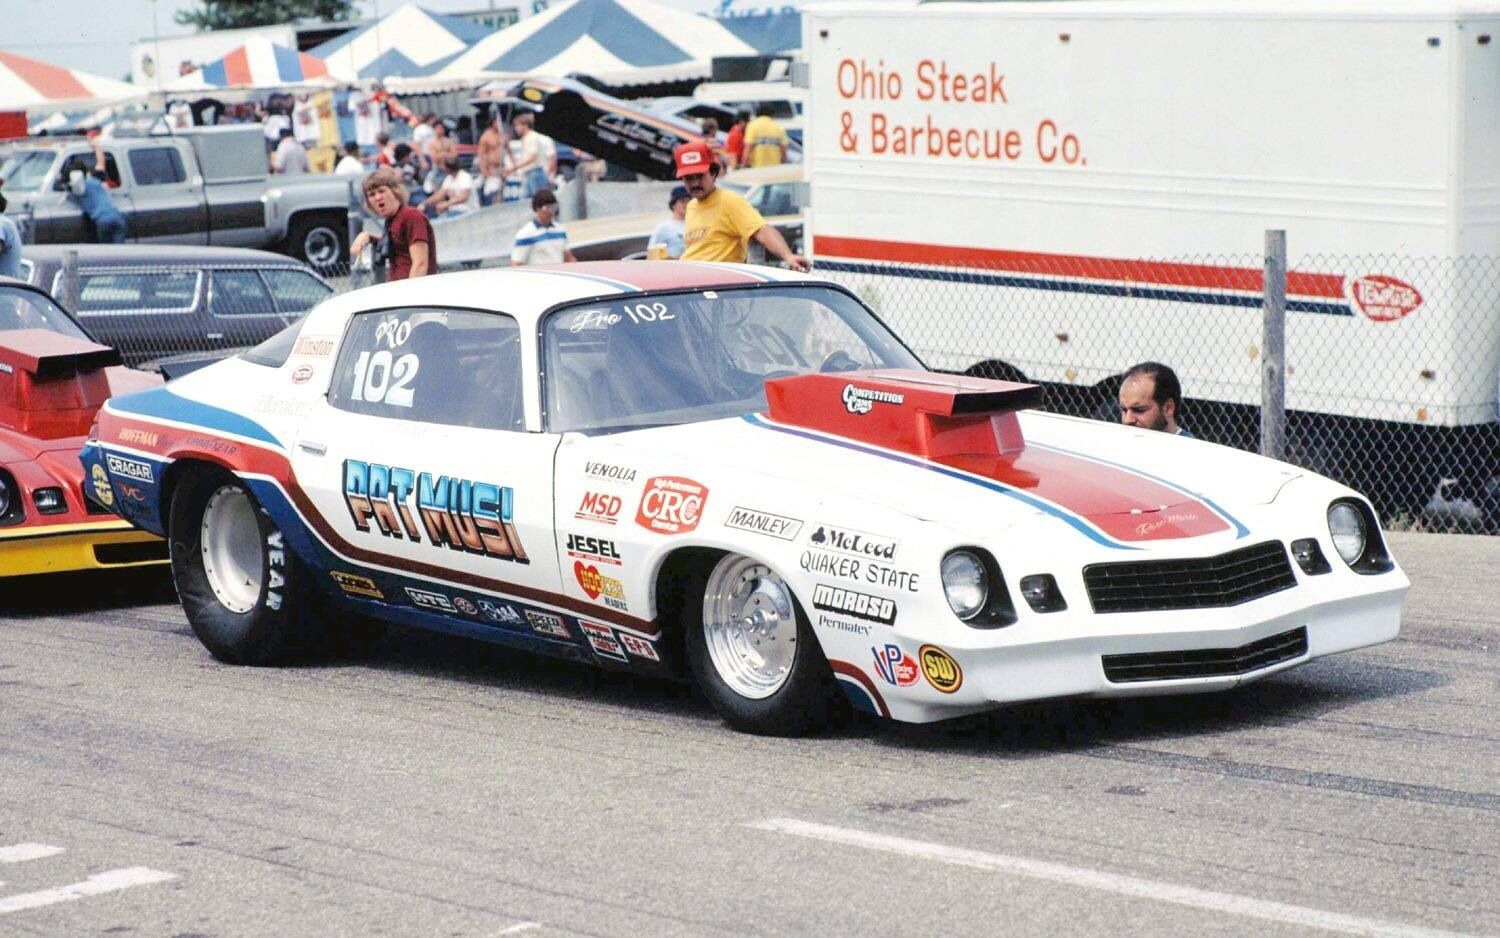 Pat Musi * | Old pro stock pictures | Pinterest | Cars, Drag race ...